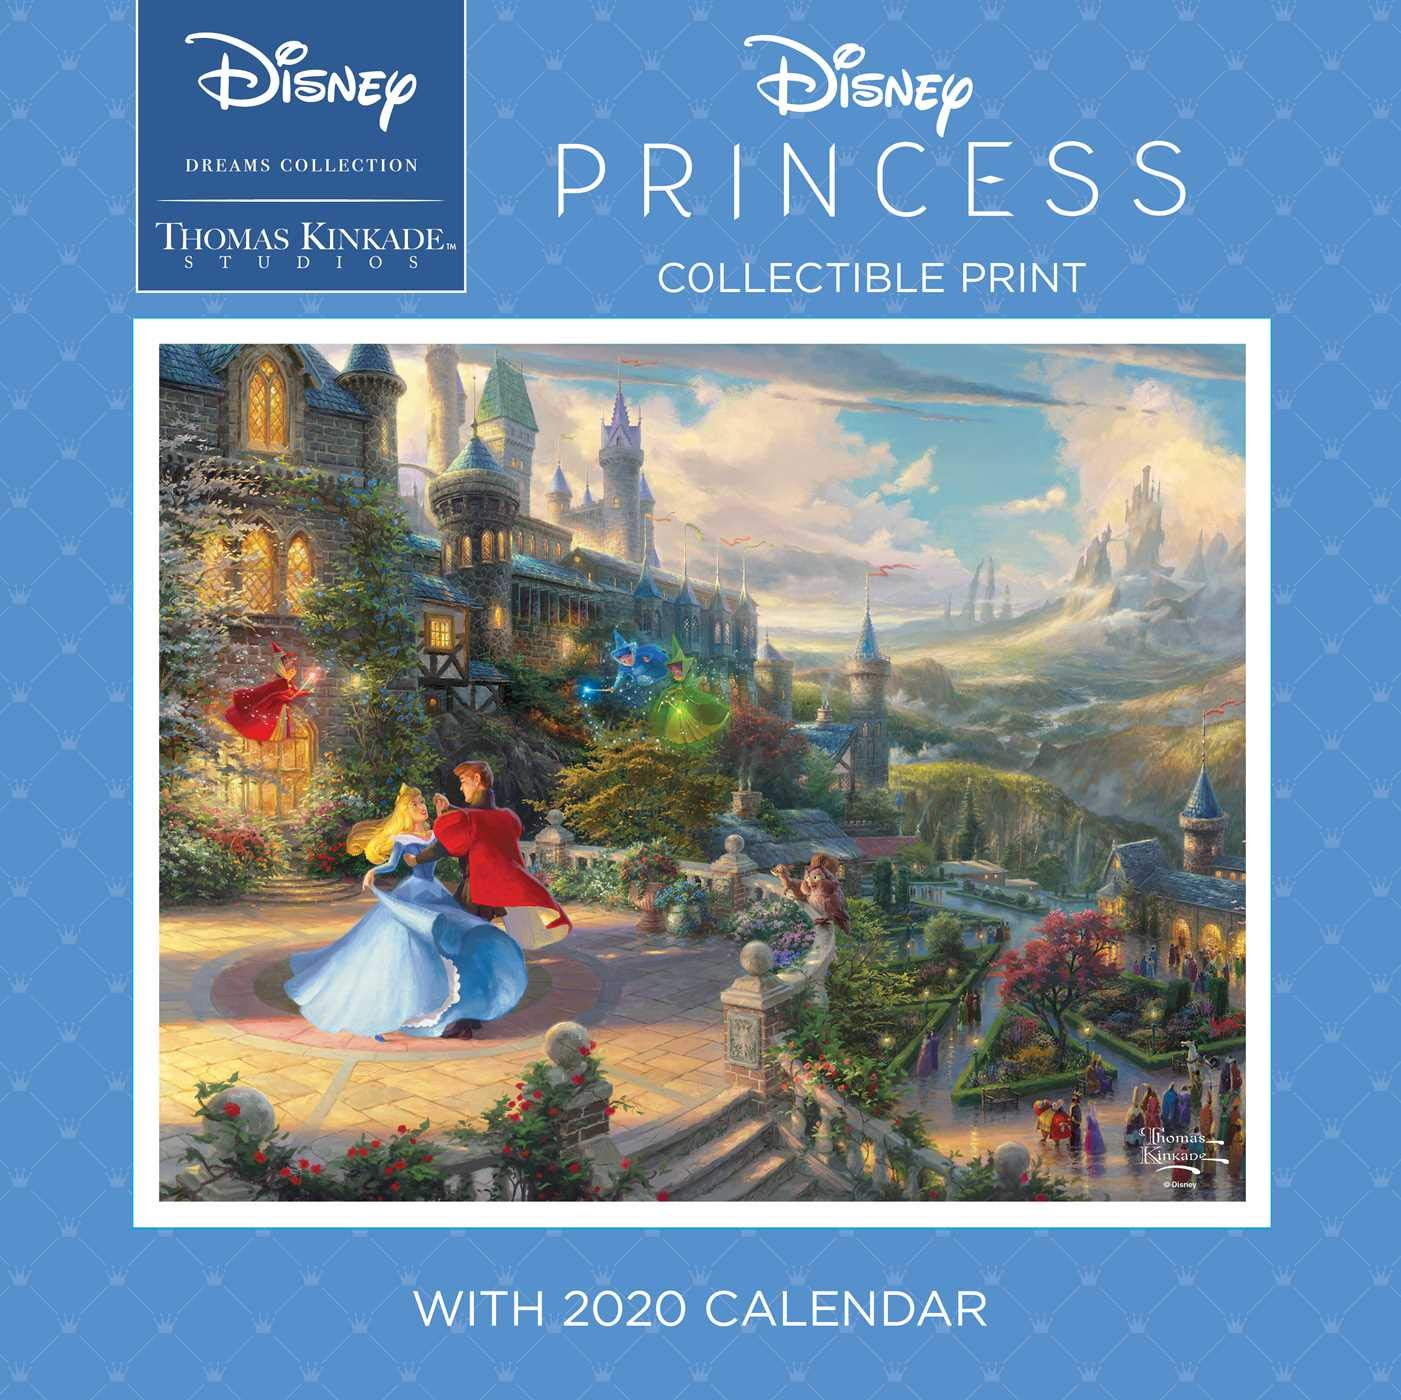 Calendrier 2020 Disney.Amazon Com Thomas Kinkade Studios Disney Dreams Collection